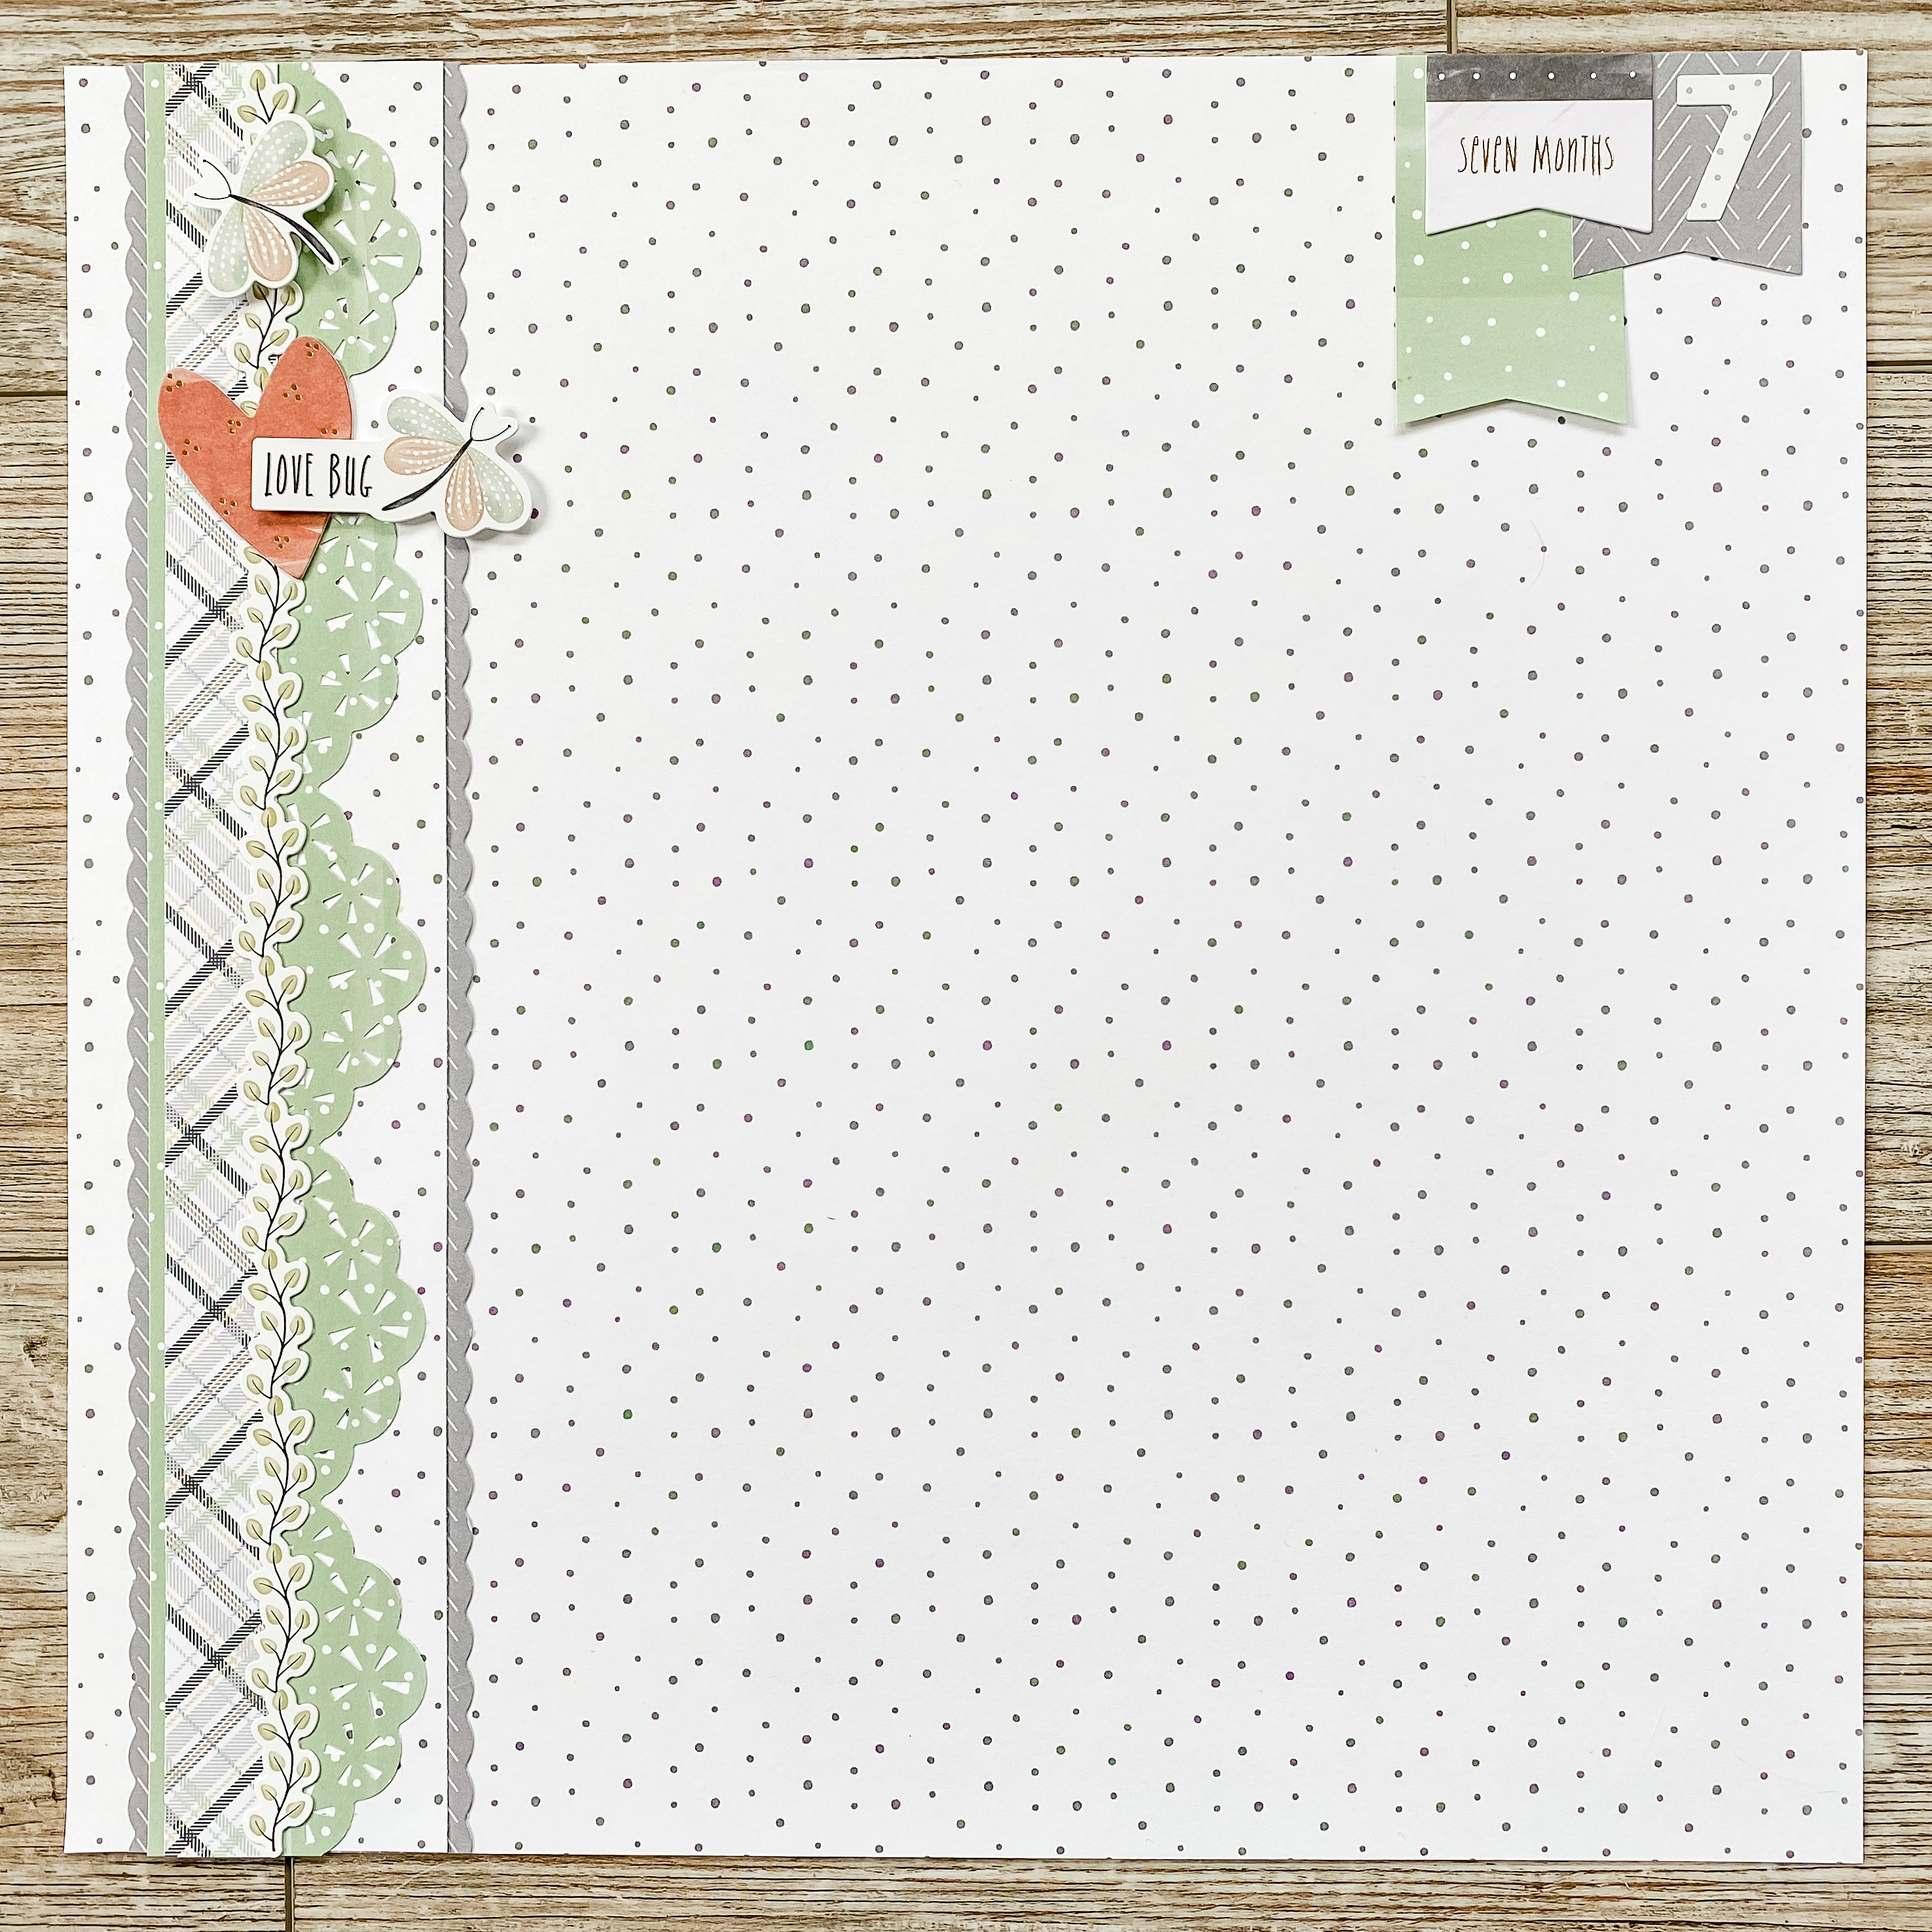 Little-Dreamer-Collection-12-Months-Borders-Creative-Memories-8